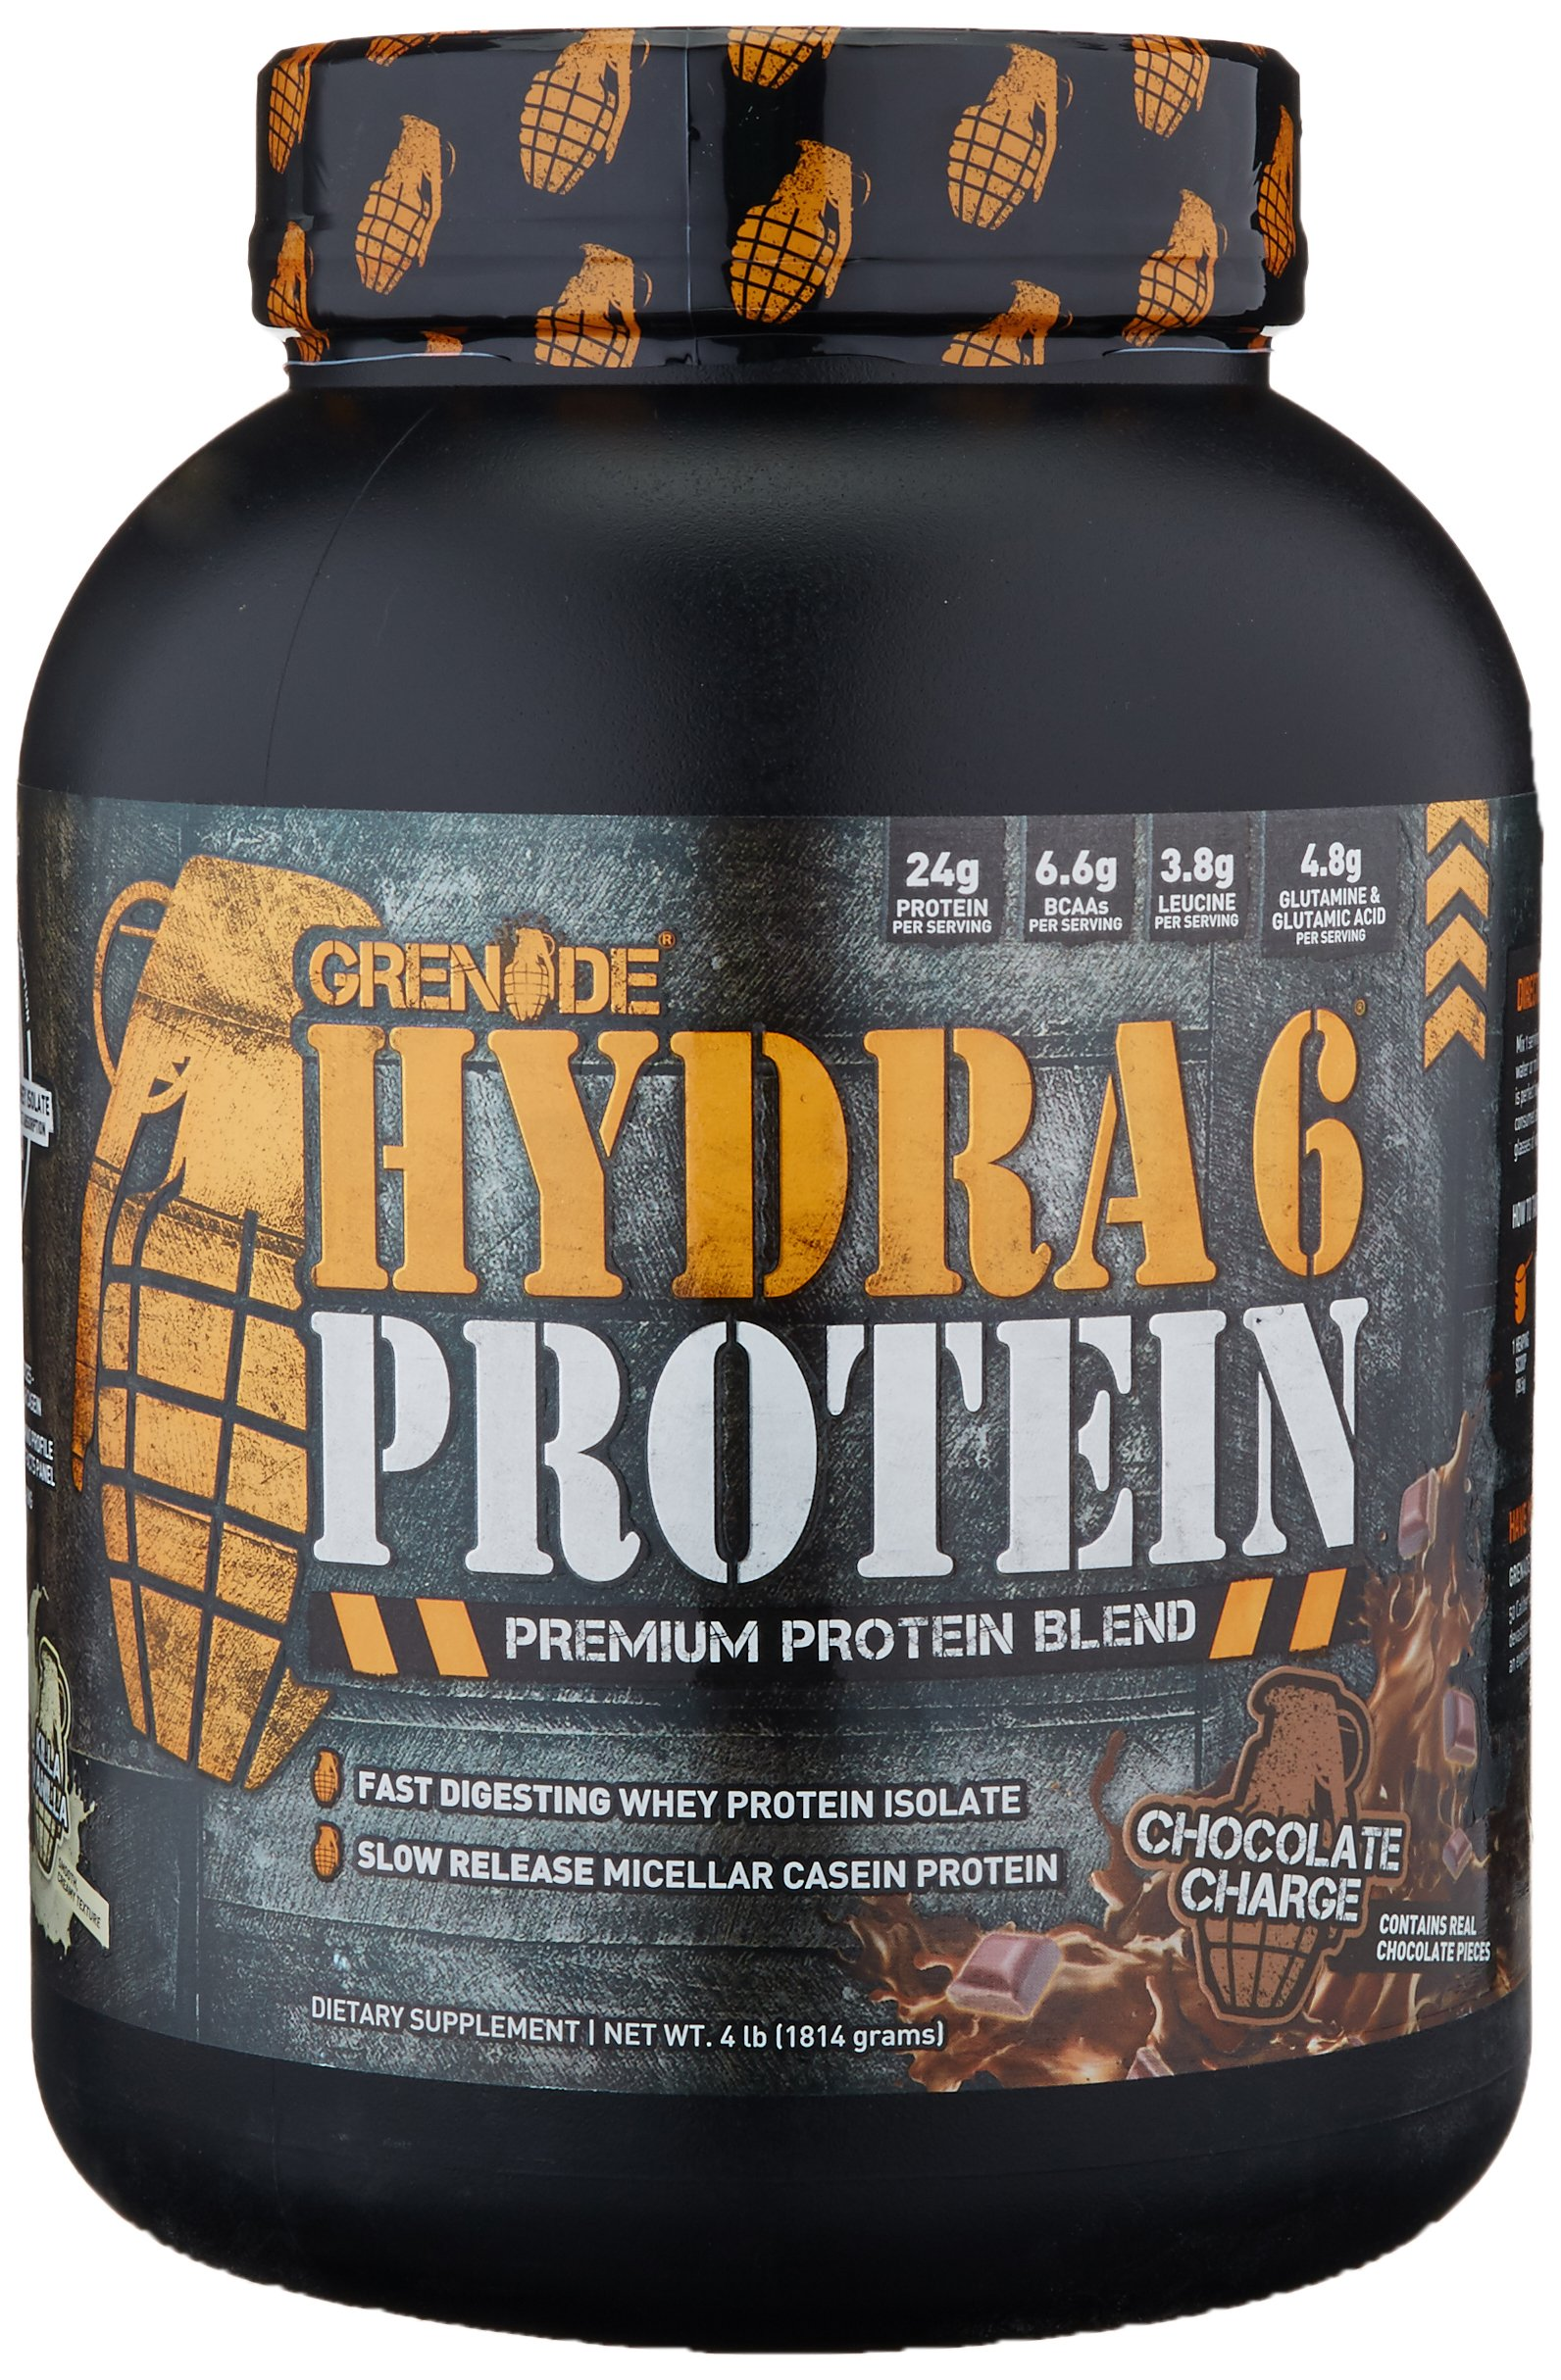 Grenade Whey Protein Powder | 24g Whey Casein Protein per Serving | Low Net Carb Low